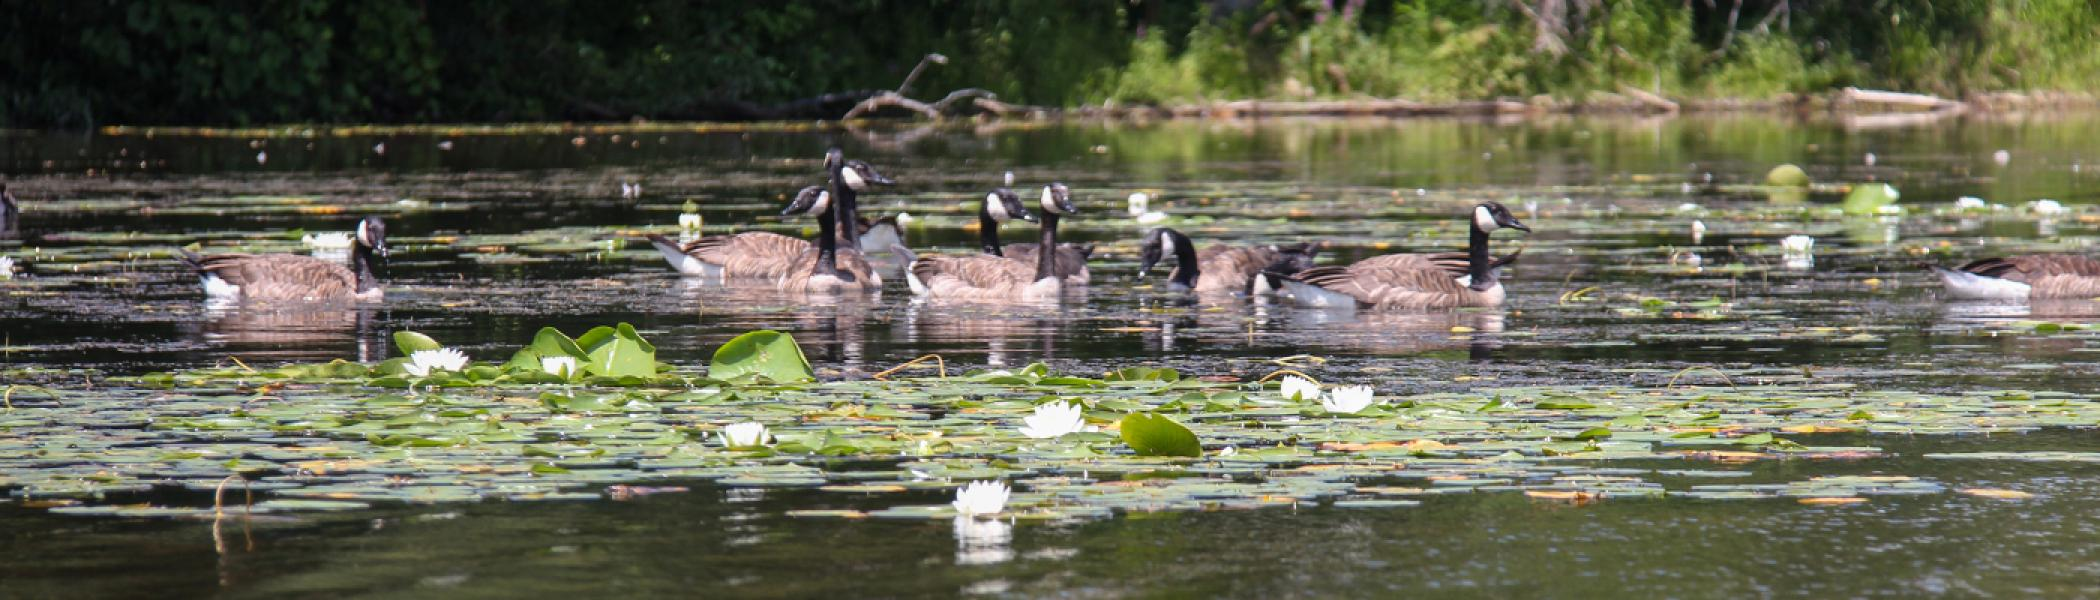 A group of canada geese swimming in a river surrounded by lilly pads